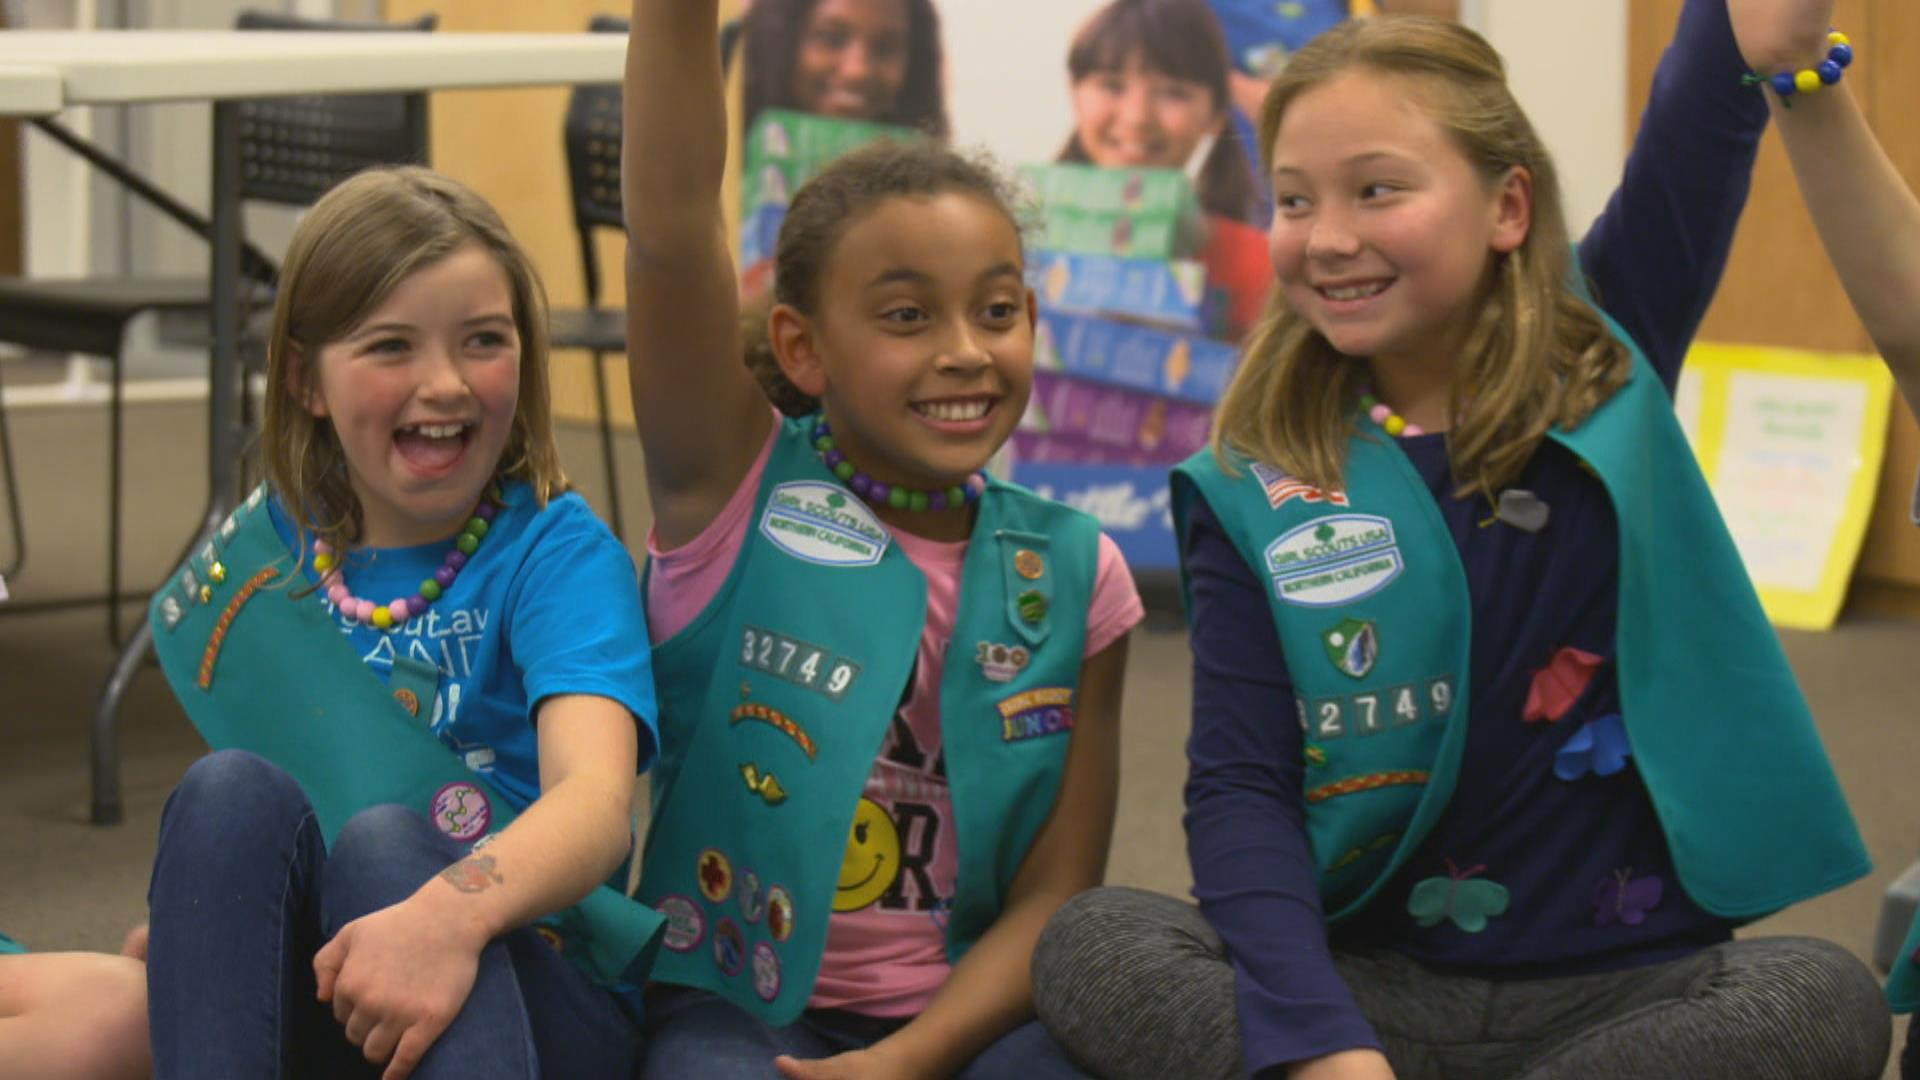 girl scouts fight cybercrime with new cybersecurity badge